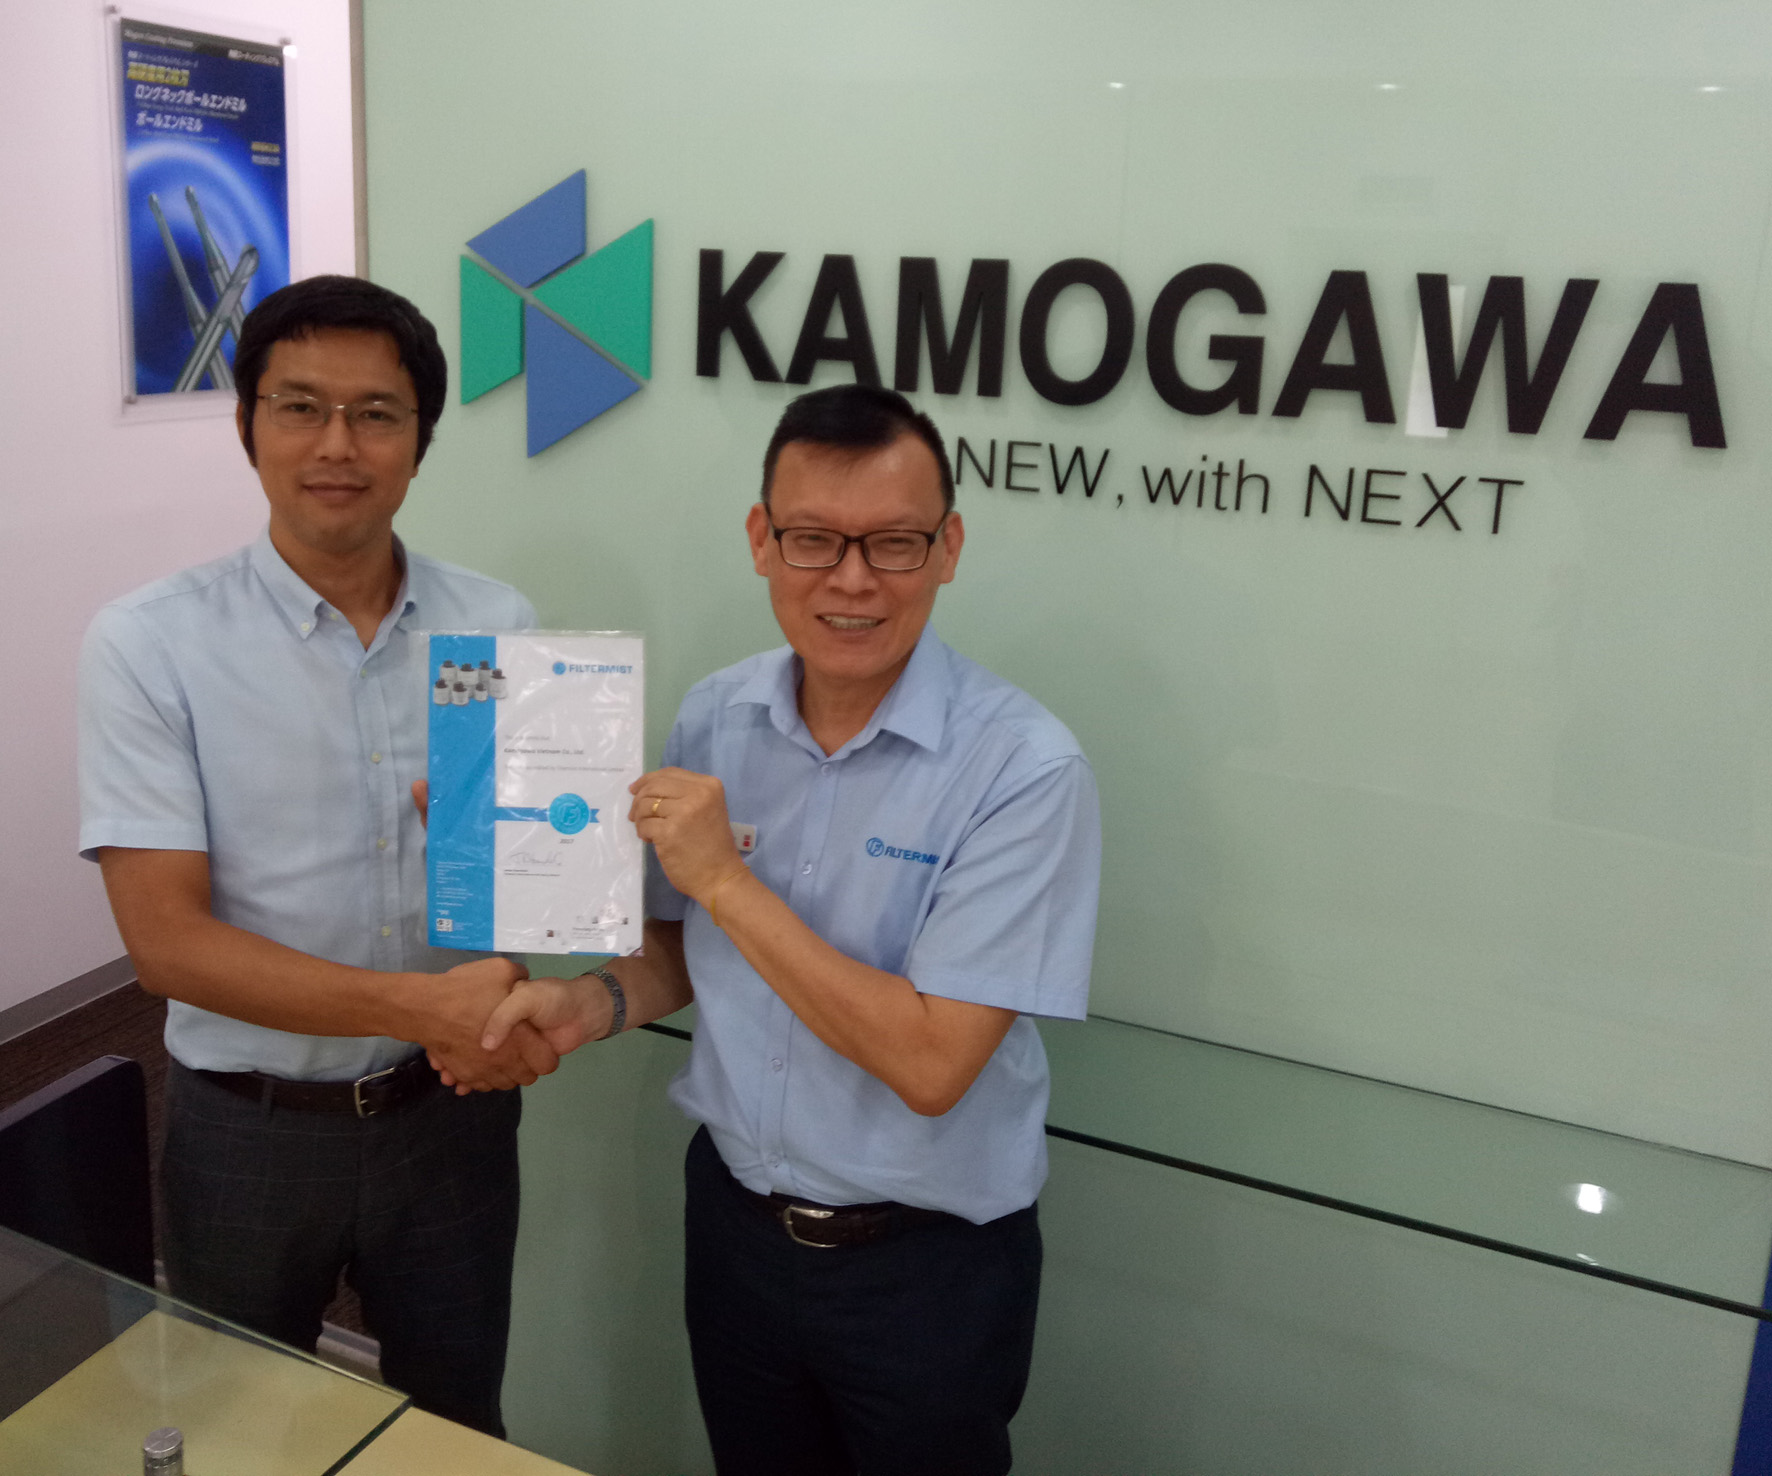 Mr Nakauchi, President of Kamogawa Vietnam, receives the company's official 'Filtermist Distributor' certificate from Desmond Teo